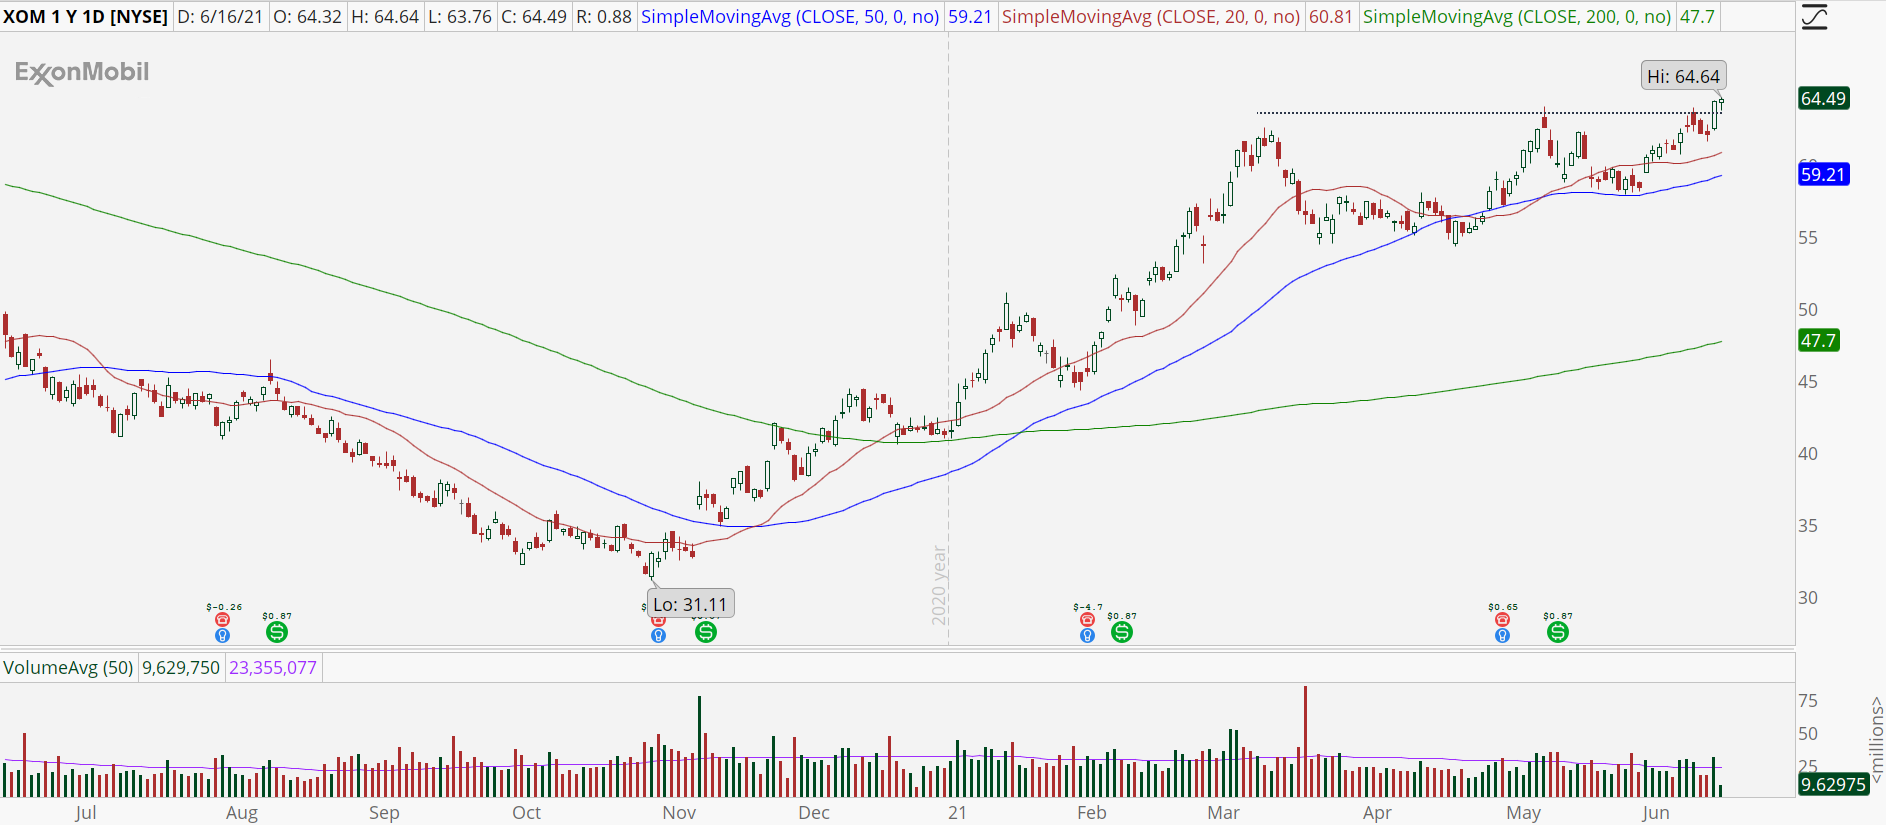 Exxon Mobil (XOM) chart with cup-and-handle breakout